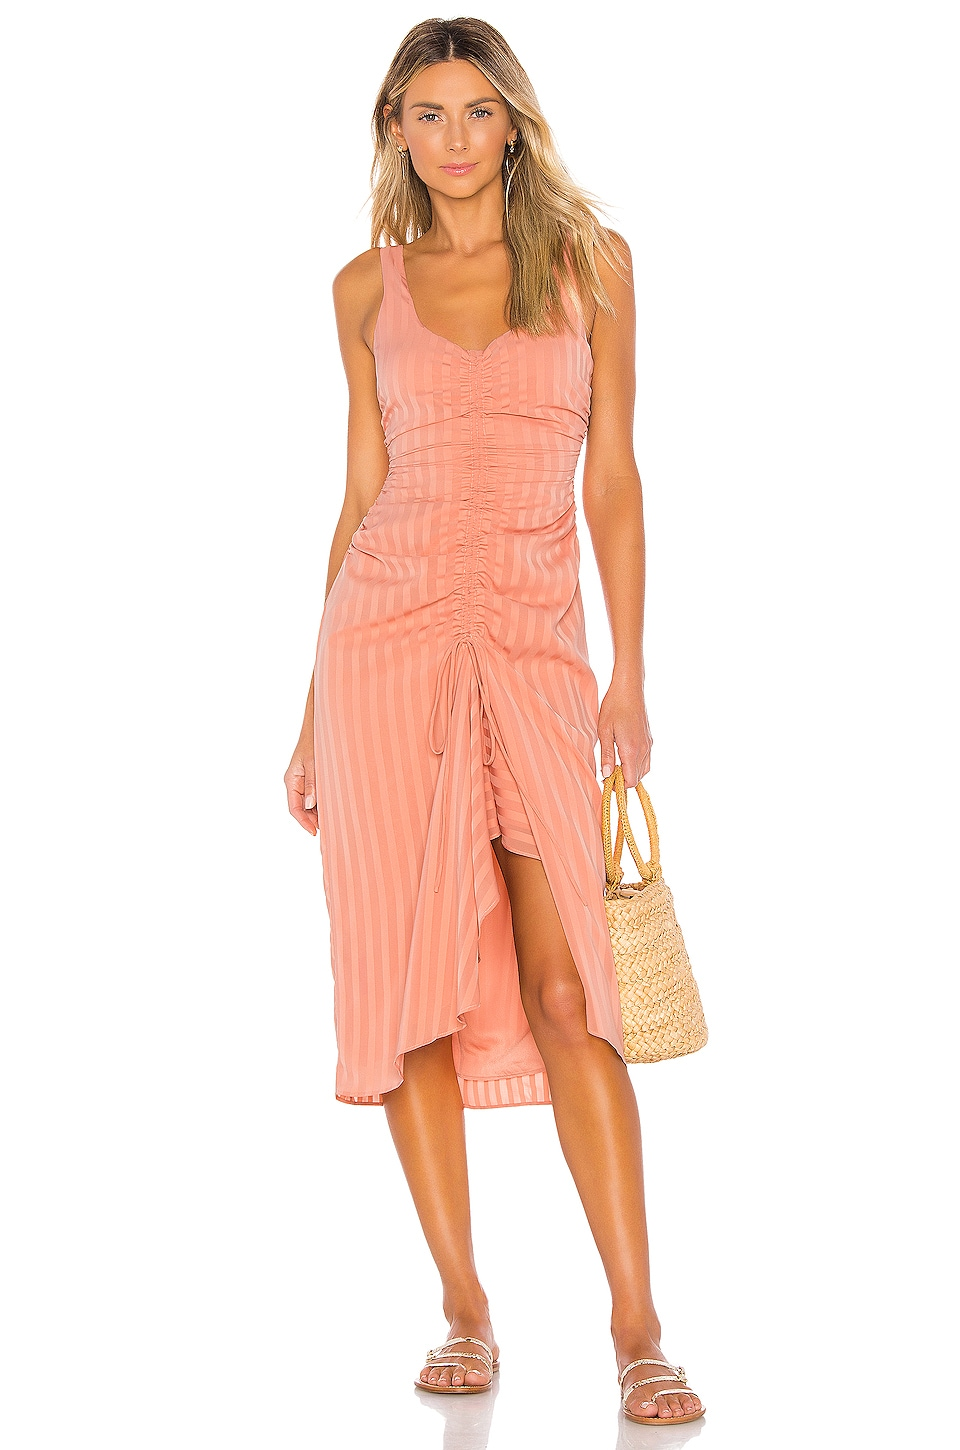 House of Harlow 1960 X REVOLVE Claudia Midi Dress in Peach